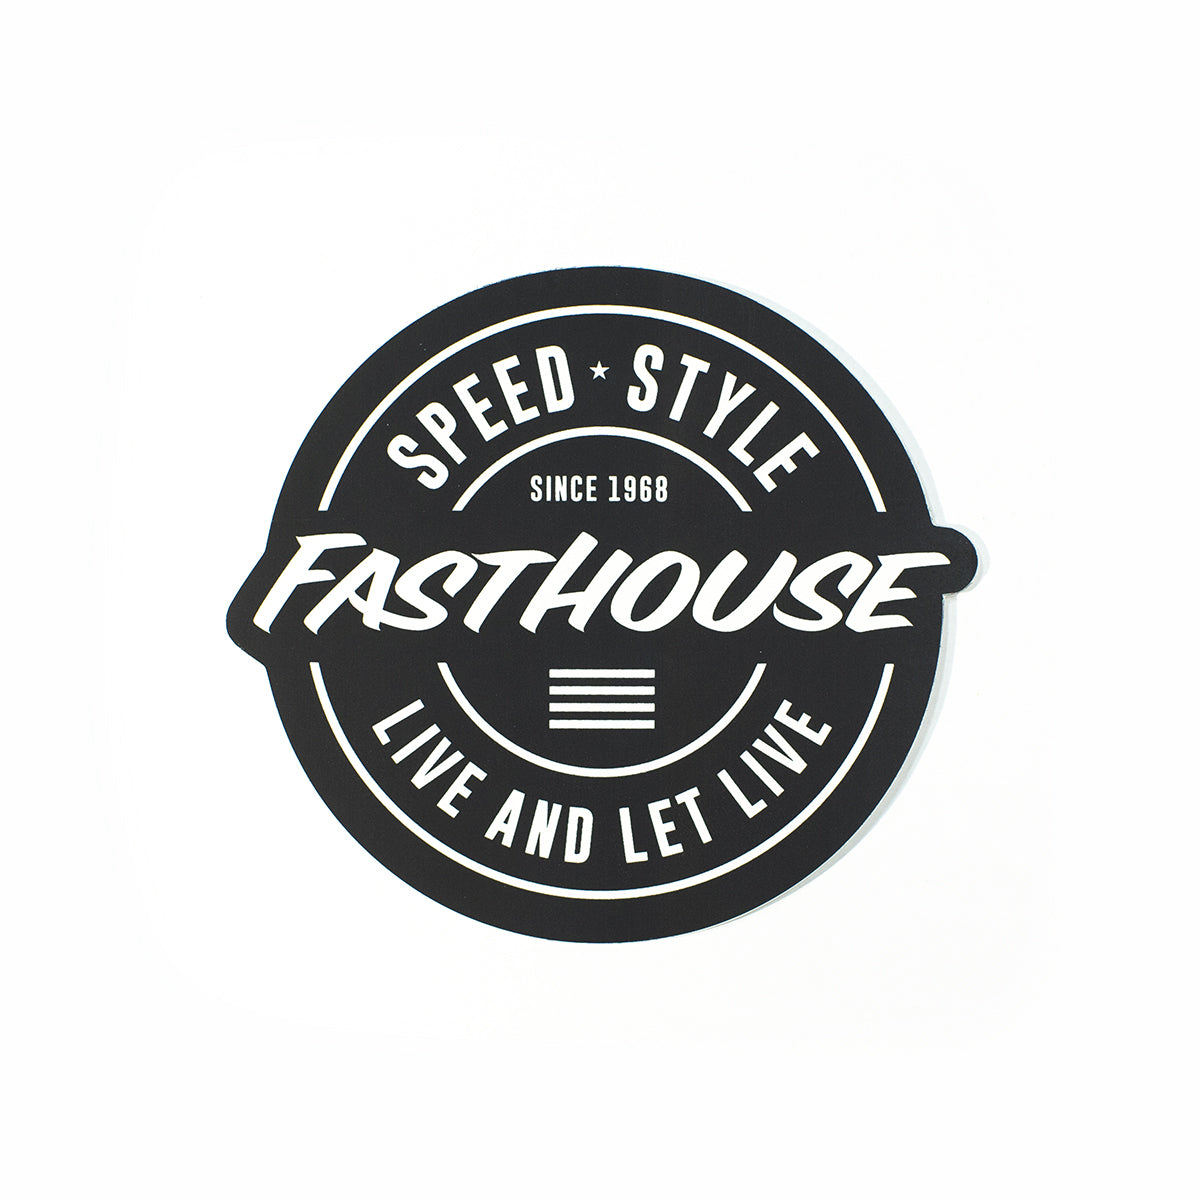 Fasthouse - Four Stripes Sticker